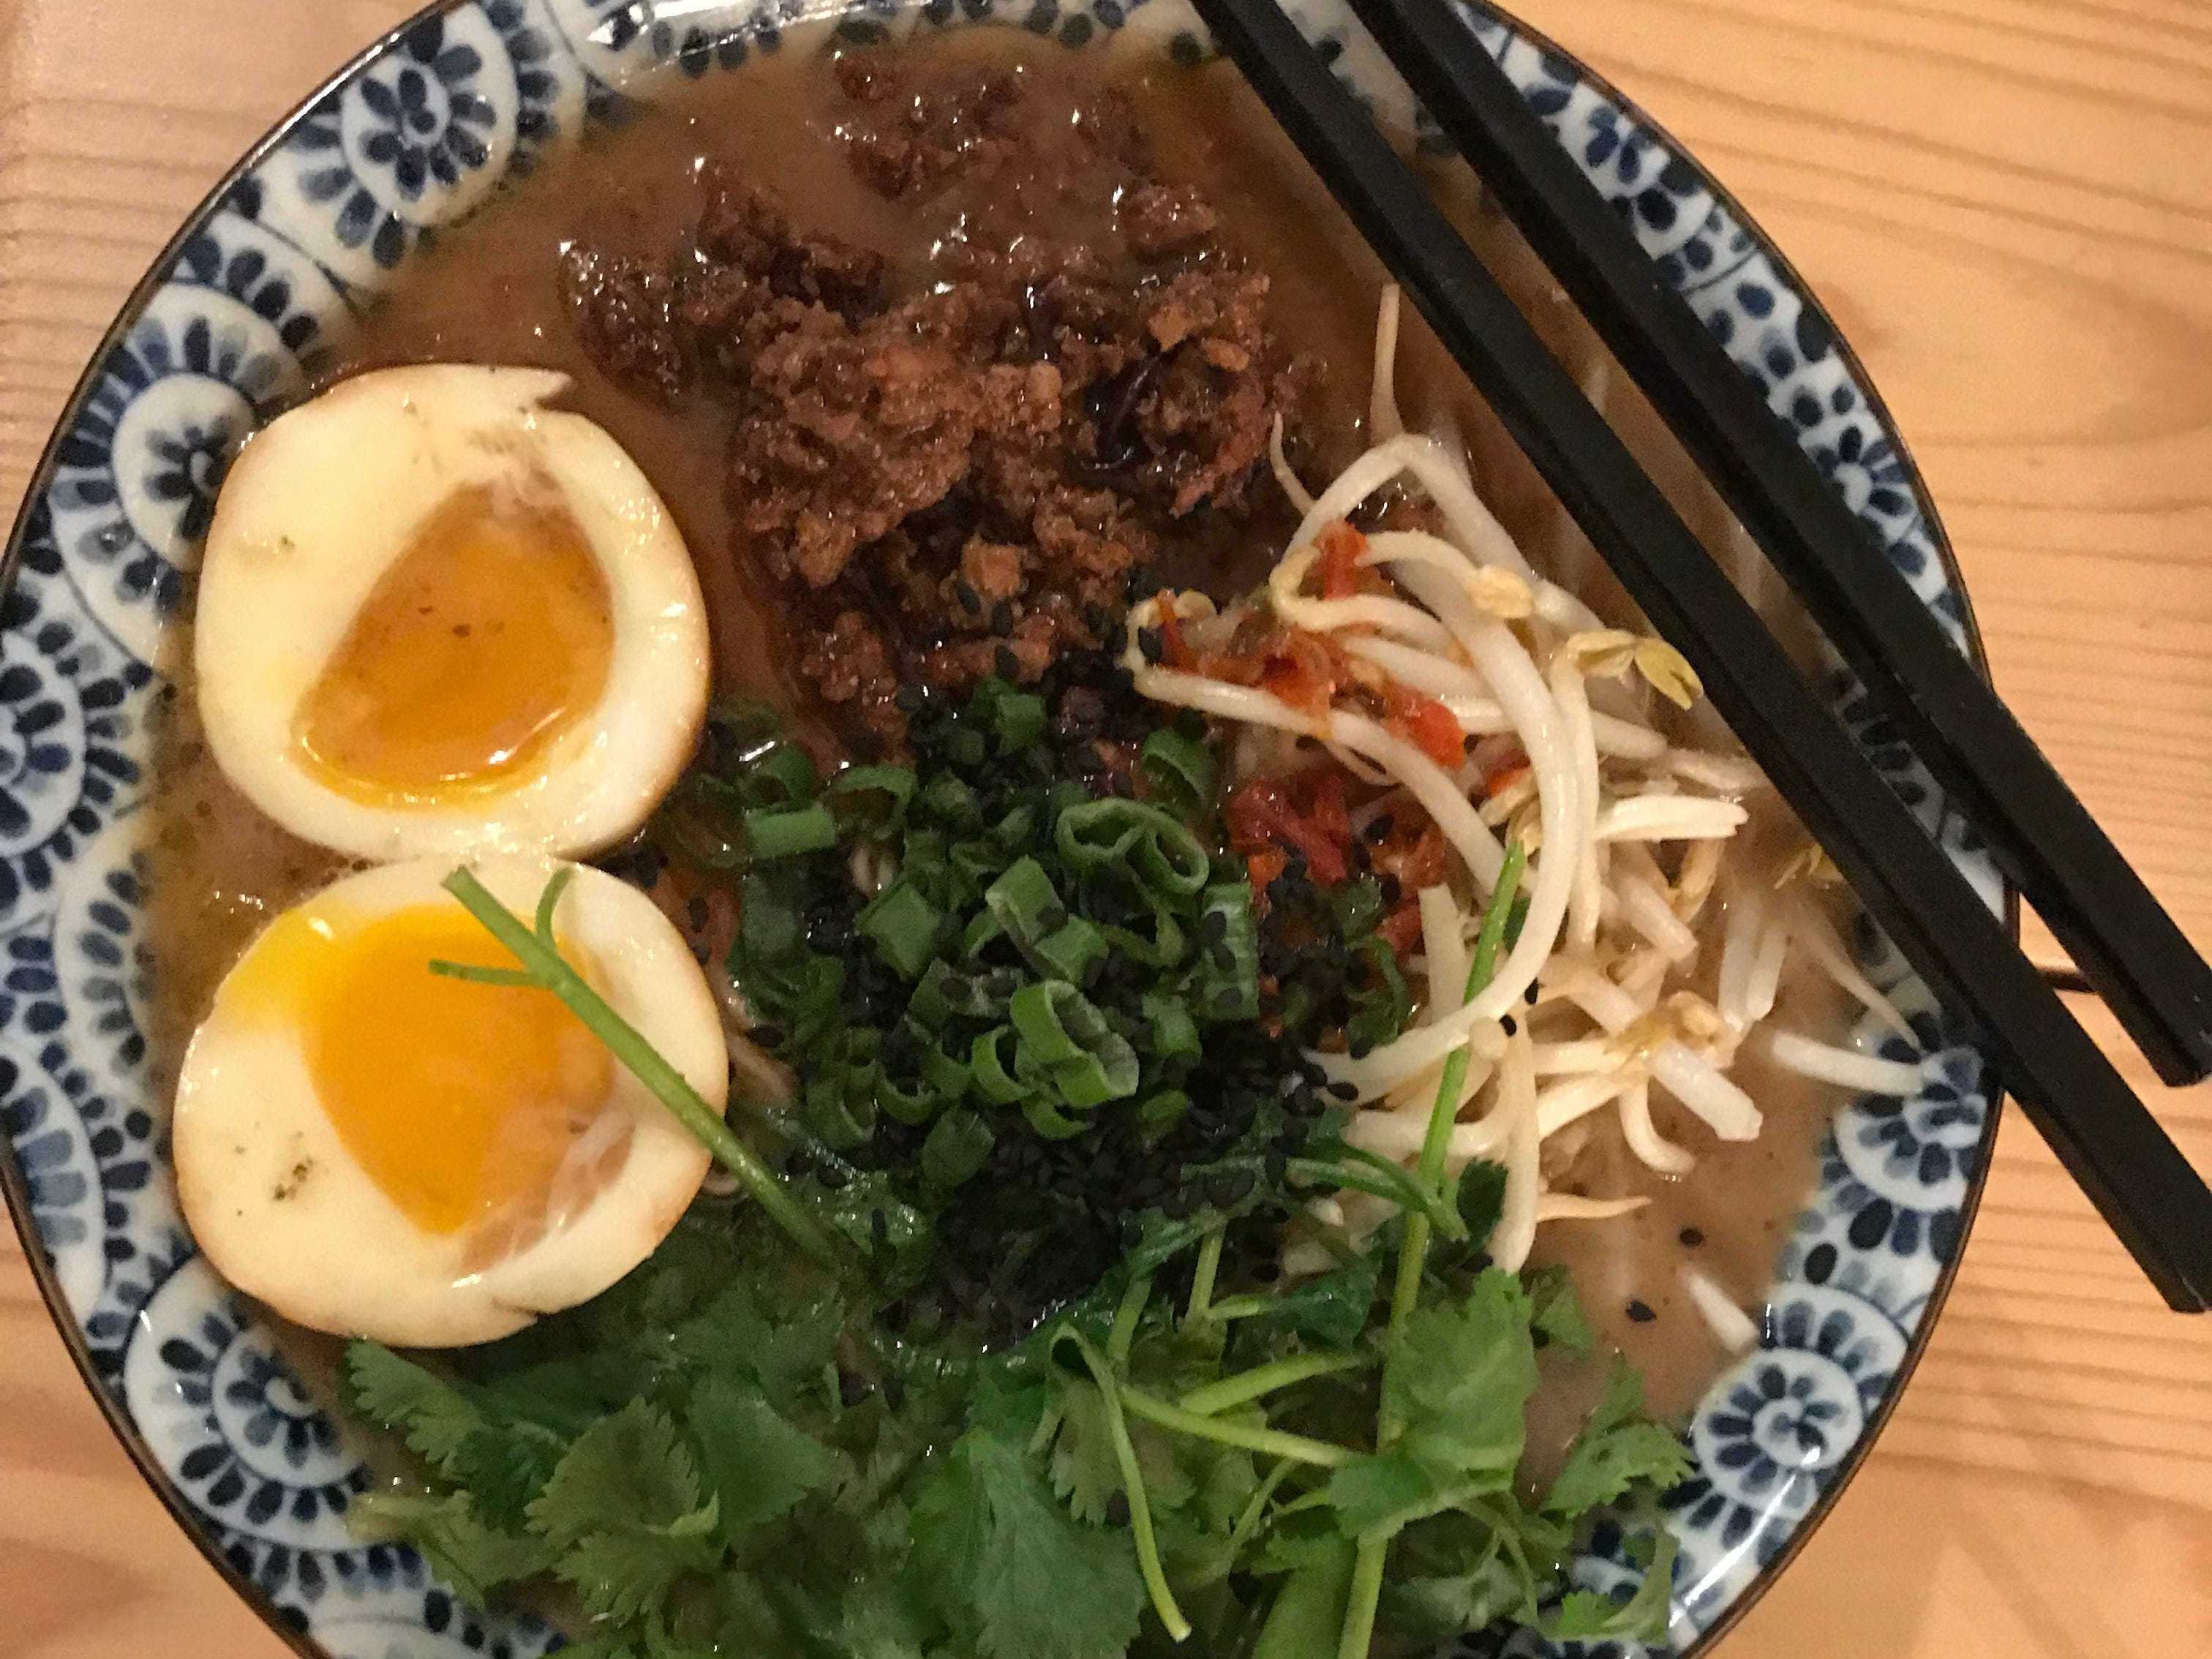 Nomikui Ramen is located on 21 Main Street in Binghamton.